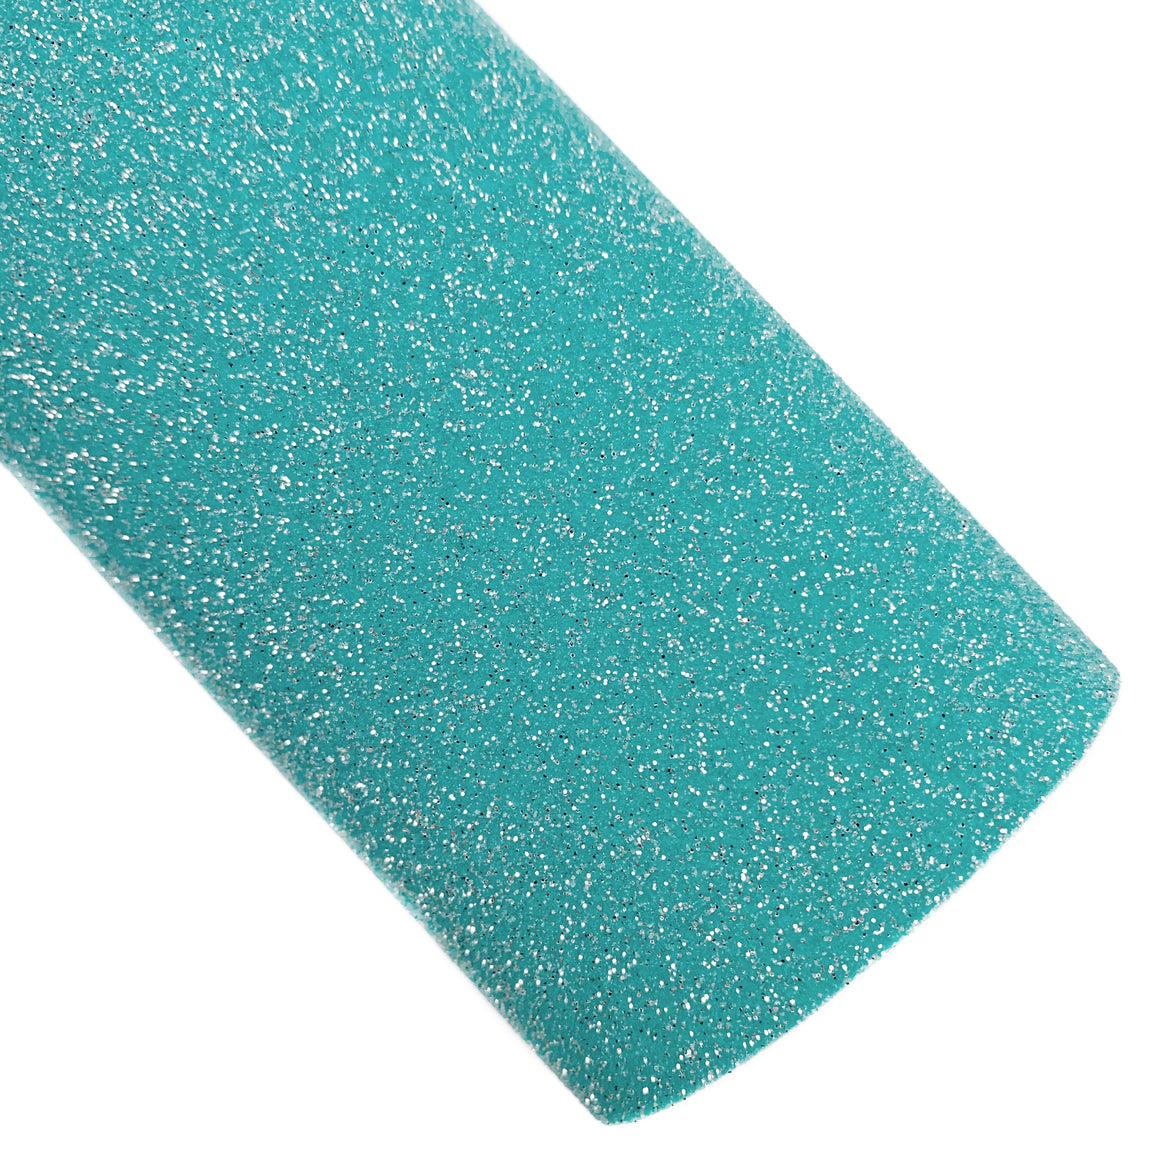 Teal Fairy Dust Glitter